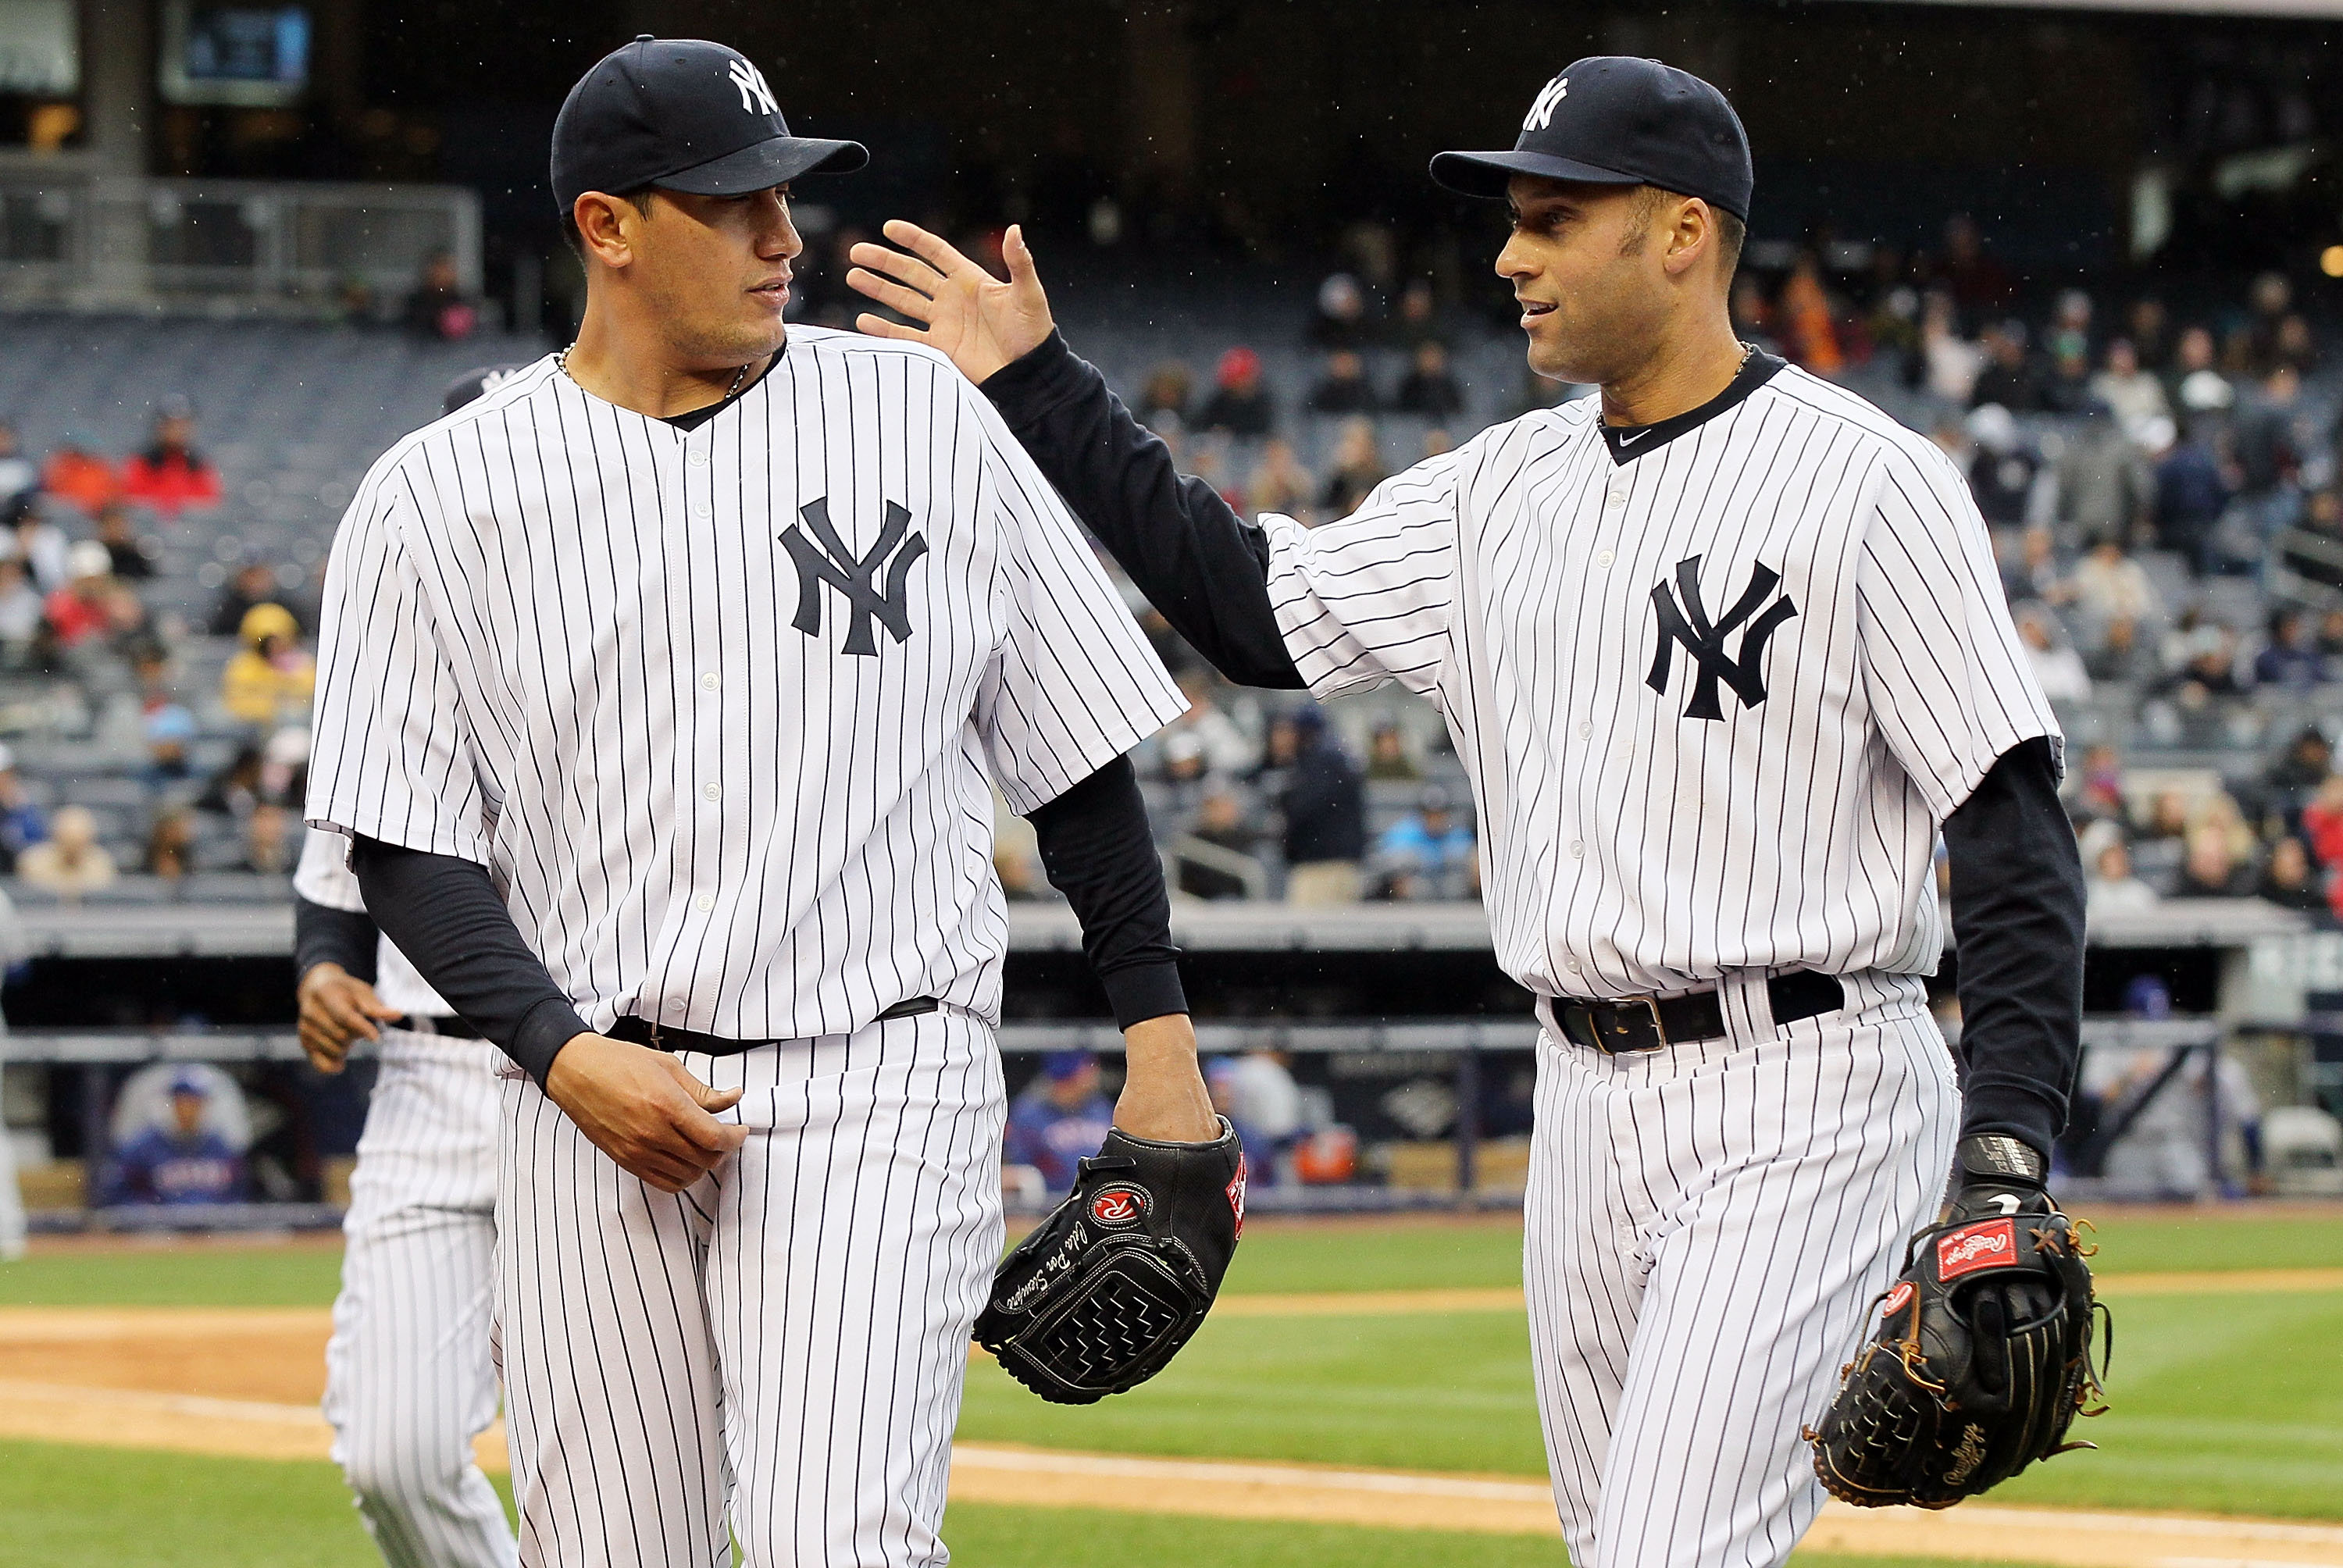 NEW YORK, NY - APRIL 16:  Freddy Garcia #36 and Derek Jeter #2 of the New York Yankees celebrate the final out of an inning against the Texas Rangers on April 16, 2011 at Yankee Stadium in the Bronx borough of New York City.  (Photo by Jim McIsaac/Getty I